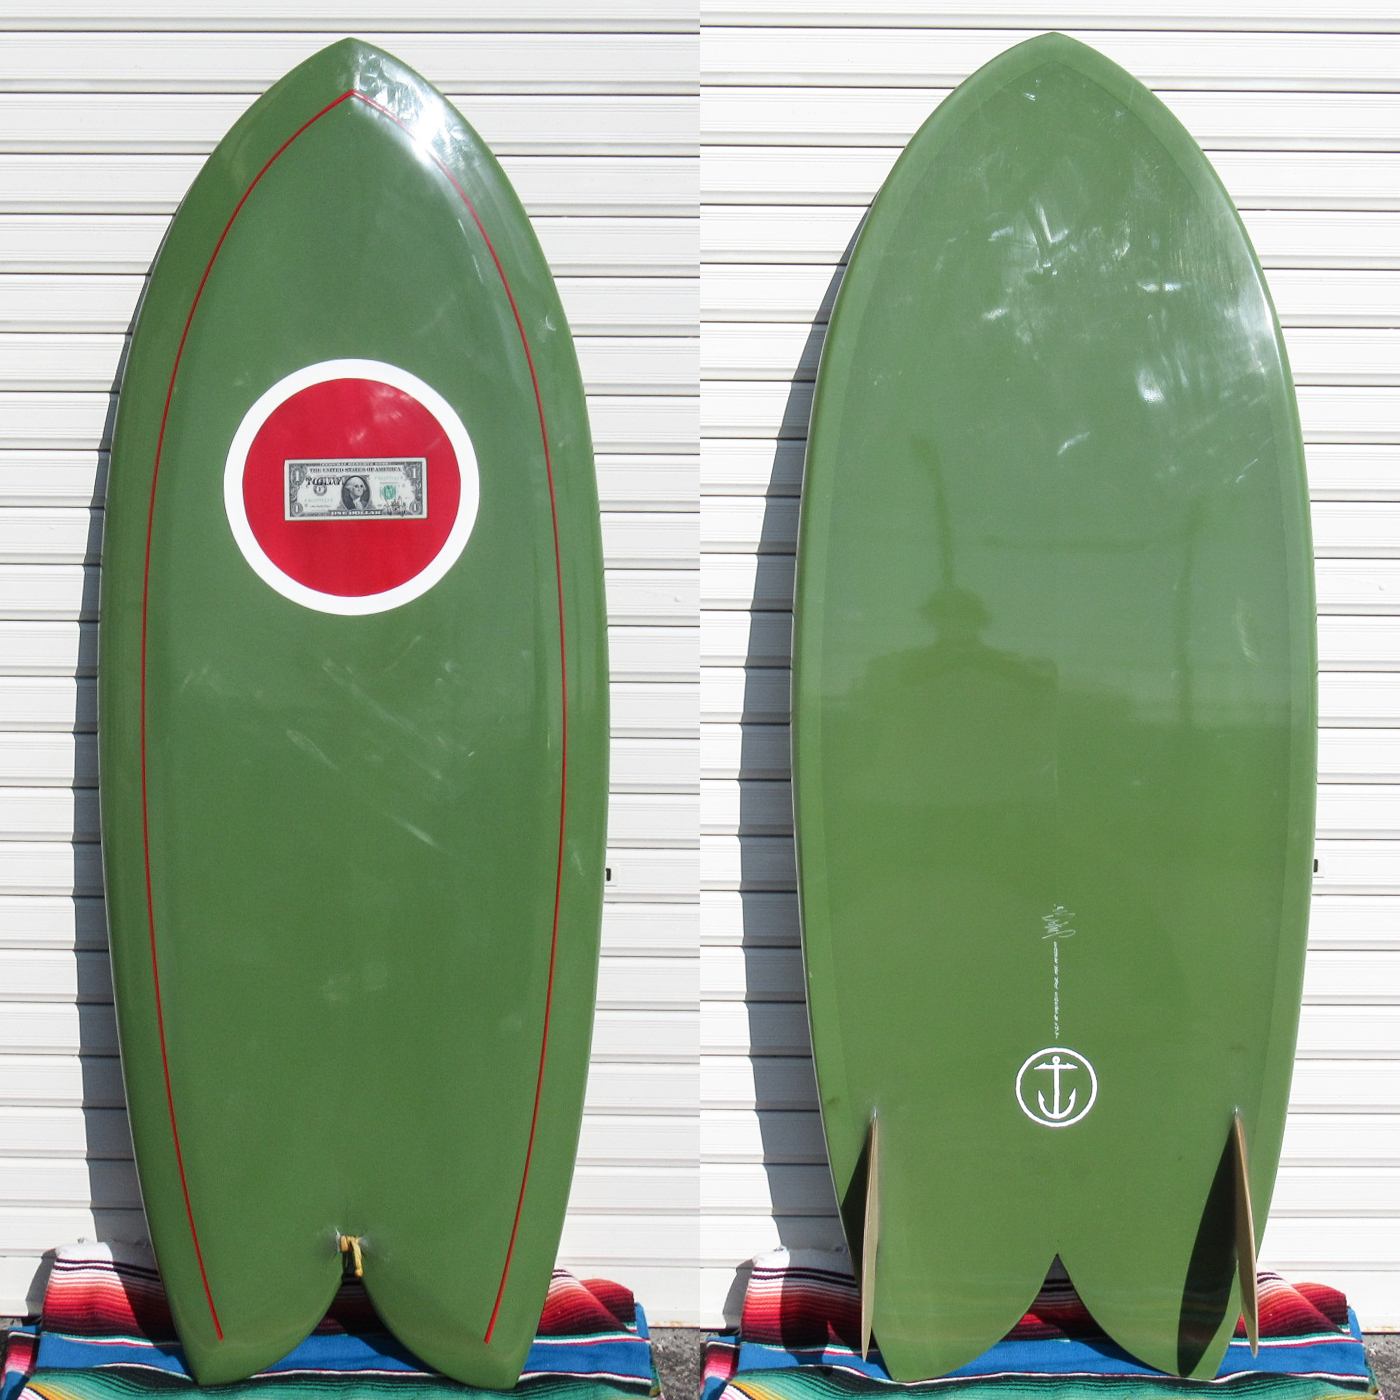 "【中古優良品】 McCallum / NEW FISH 5'2 x 22-7/8"" x 3""   【商品グレード】★★★☆☆ No.c1584"